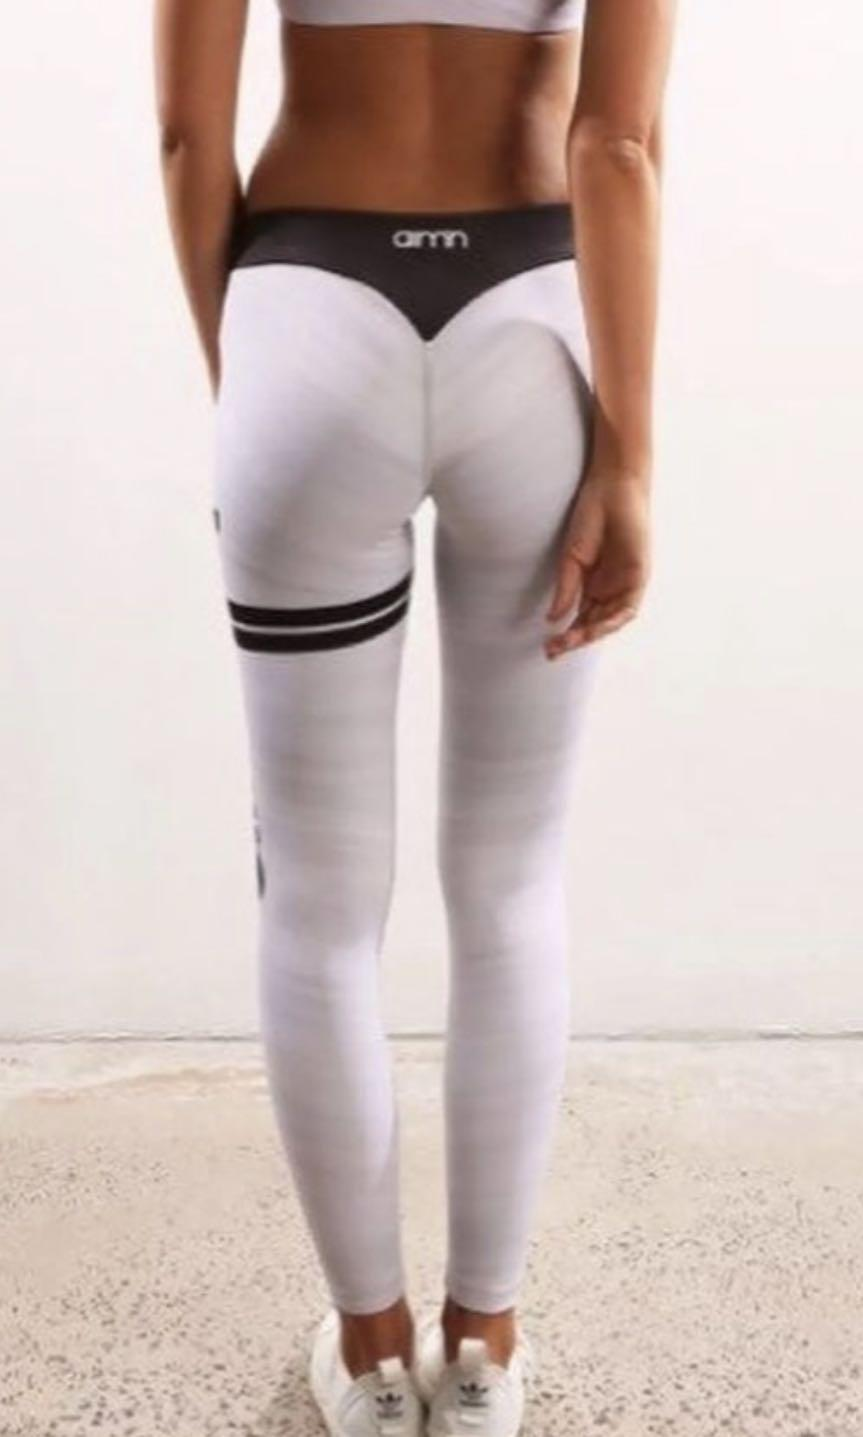 Aimn tights size XS